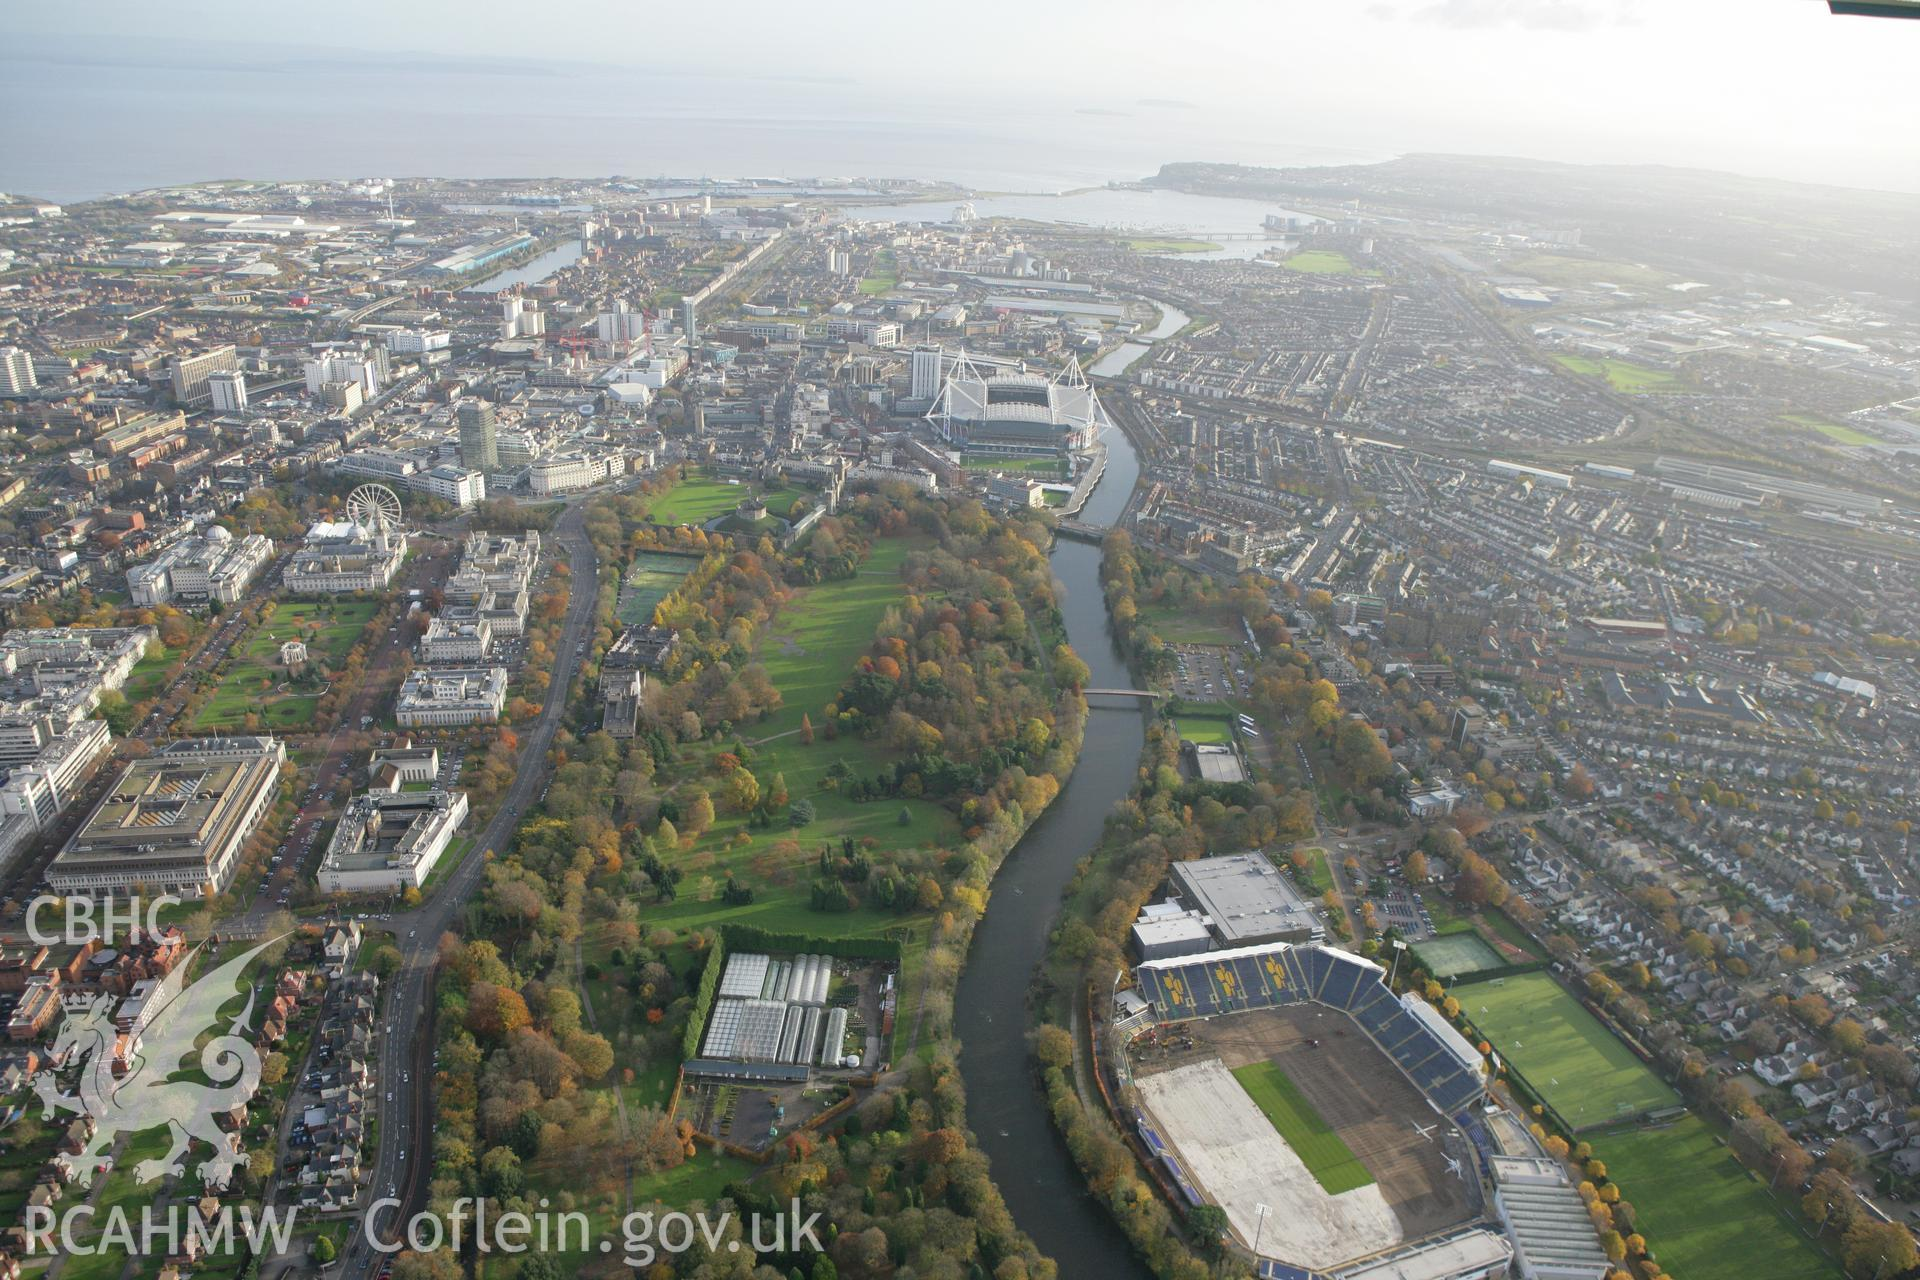 RCAHMW colour oblique photograph of Cardiff University and Bute Park, looking south towards Cardiff Bay. Taken by Toby Driver on 12/11/2008.